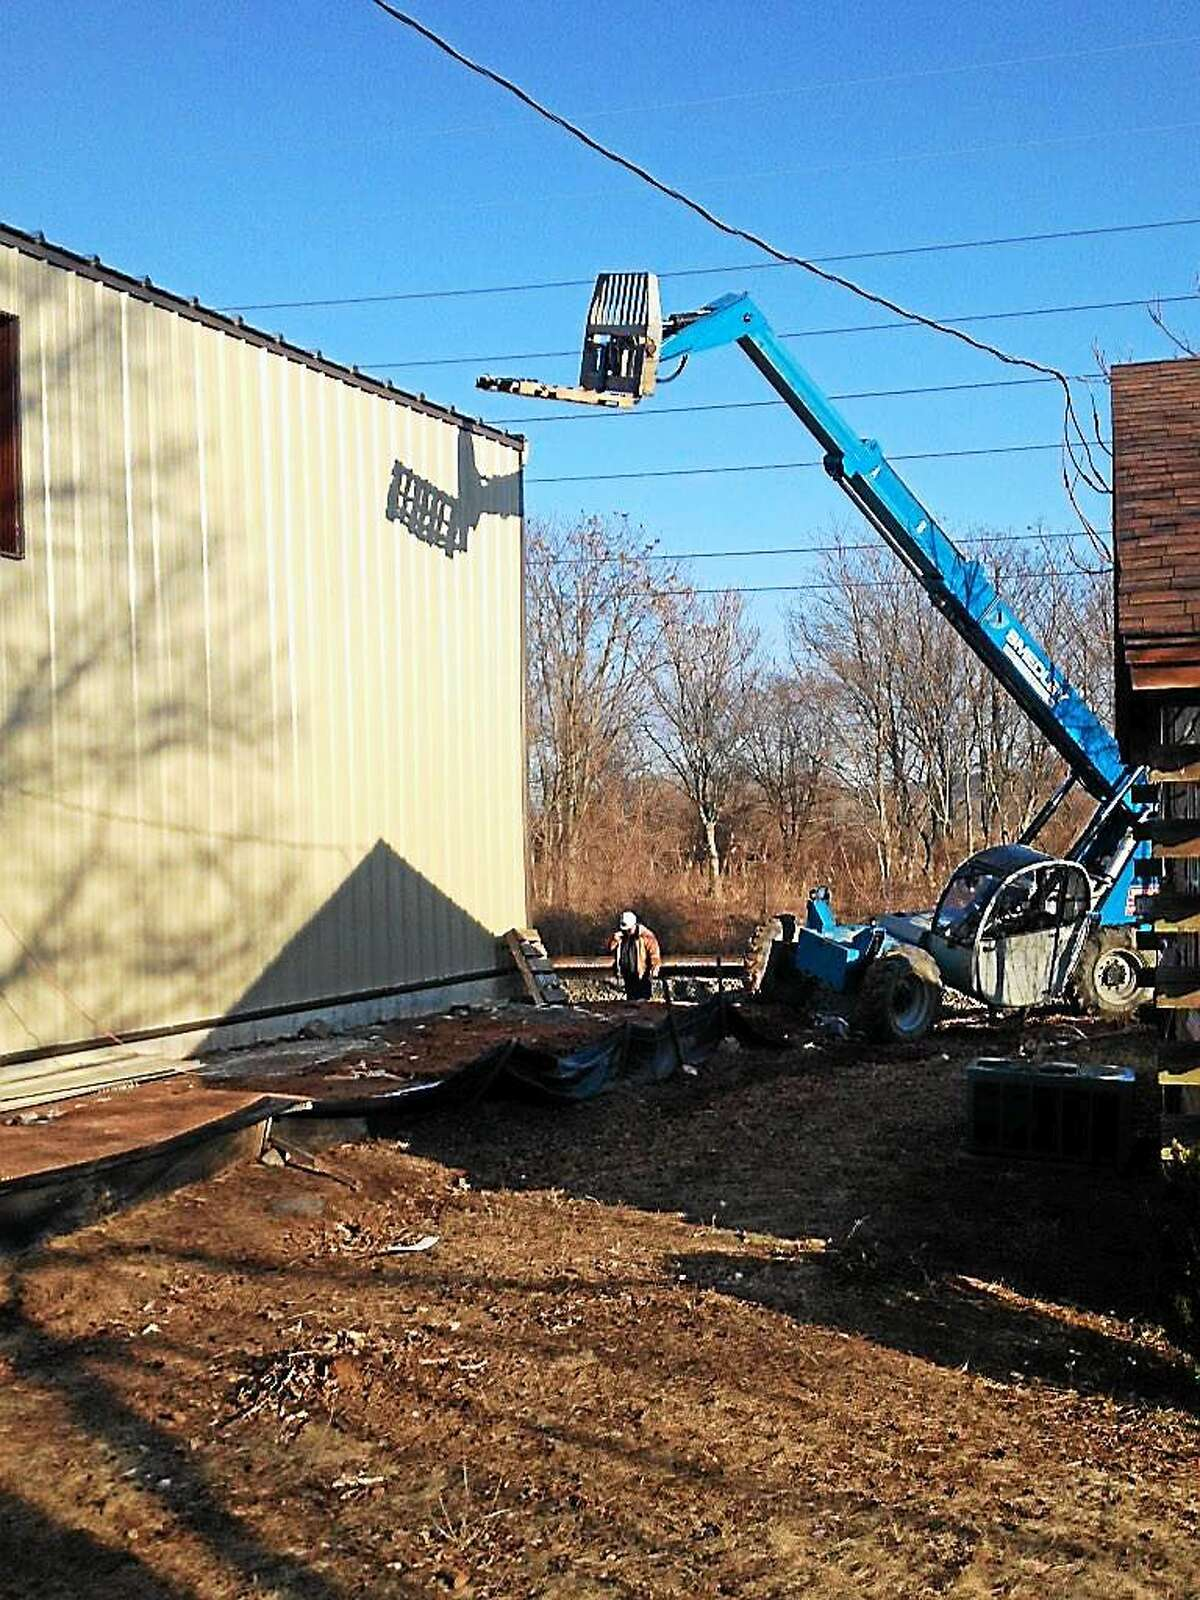 Three men were injured after falling from an aerial lift at a construction site at 2335 State St. in Hamden.